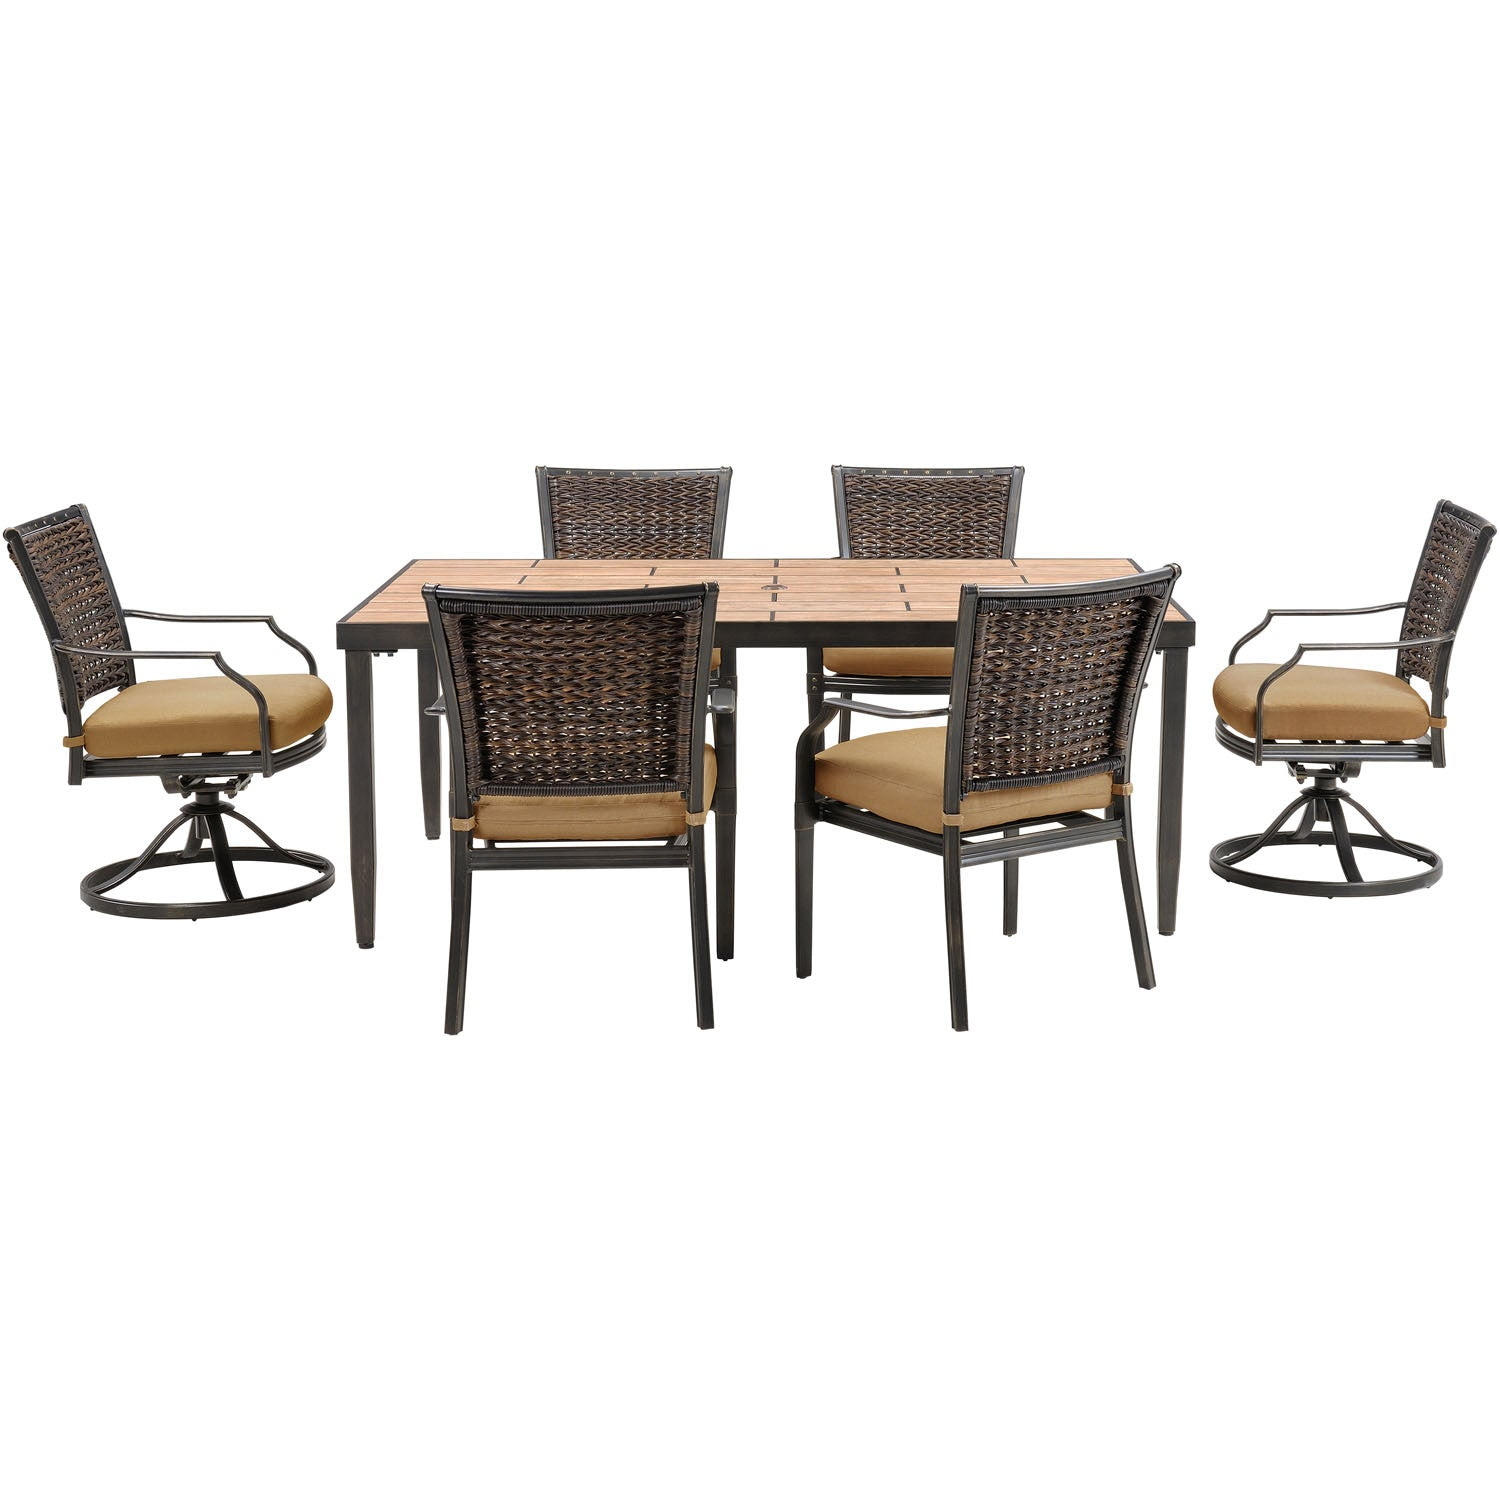 Awe Inspiring Mercer7Pc Dining Set Porcelain Tile Top Table 2 Swivel Chairs 4 Dining Chairs Mercdn7Pcsw Tan Tile Tan Evergreenethics Interior Chair Design Evergreenethicsorg